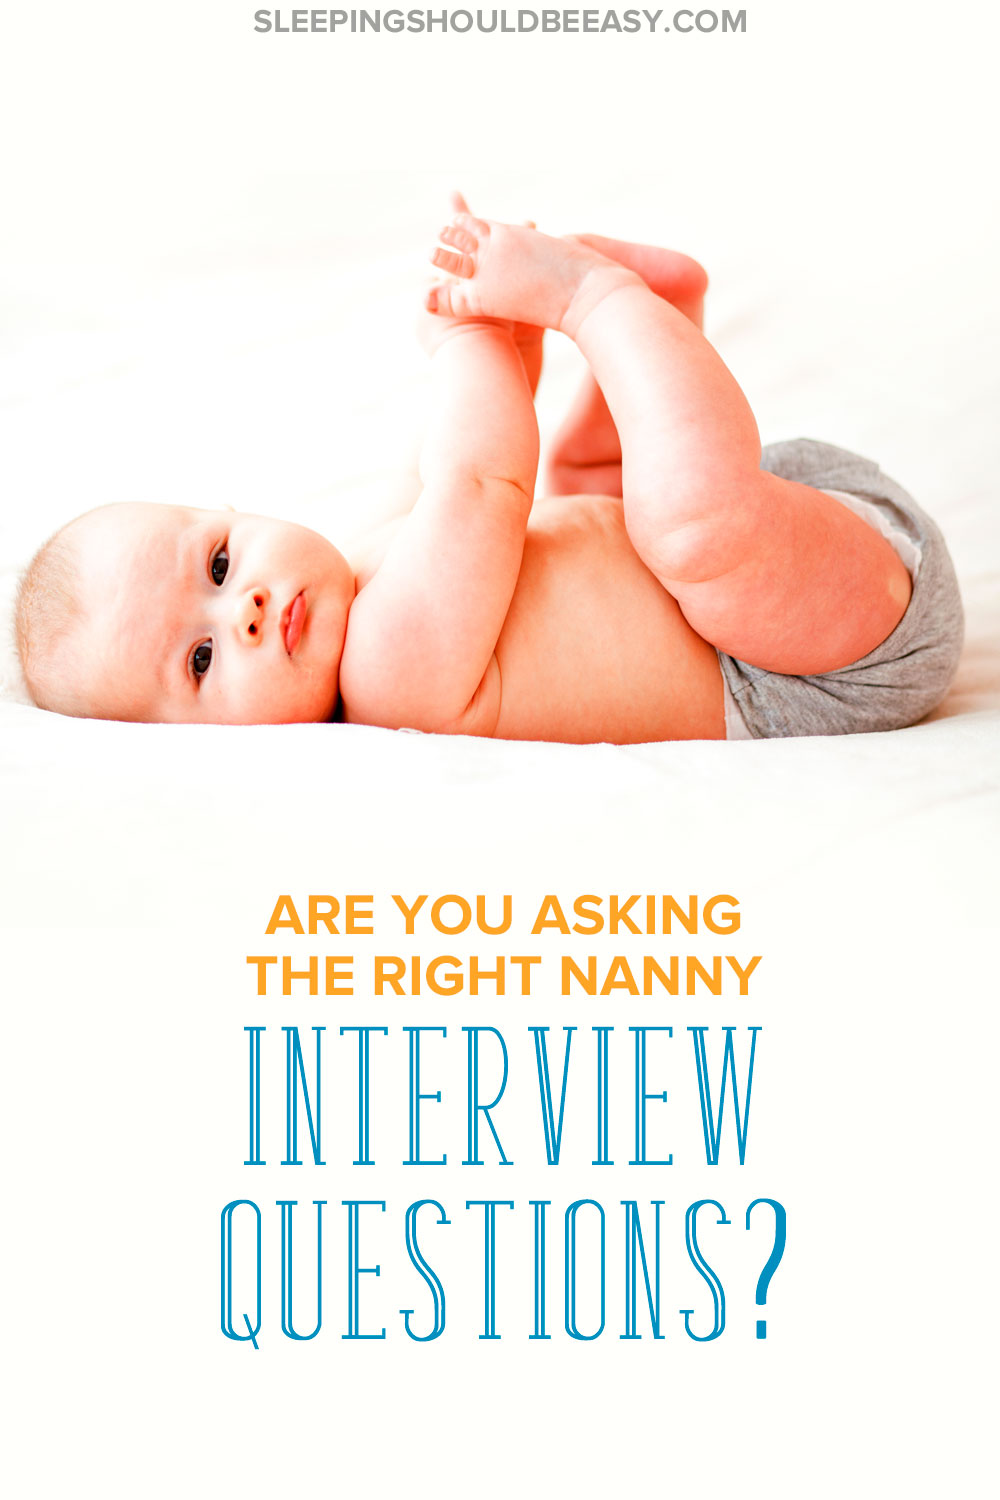 Finding the right nanny is important, but could you be asking the wrong questions? Discover the nanny interview questions you need to ask before you hire.